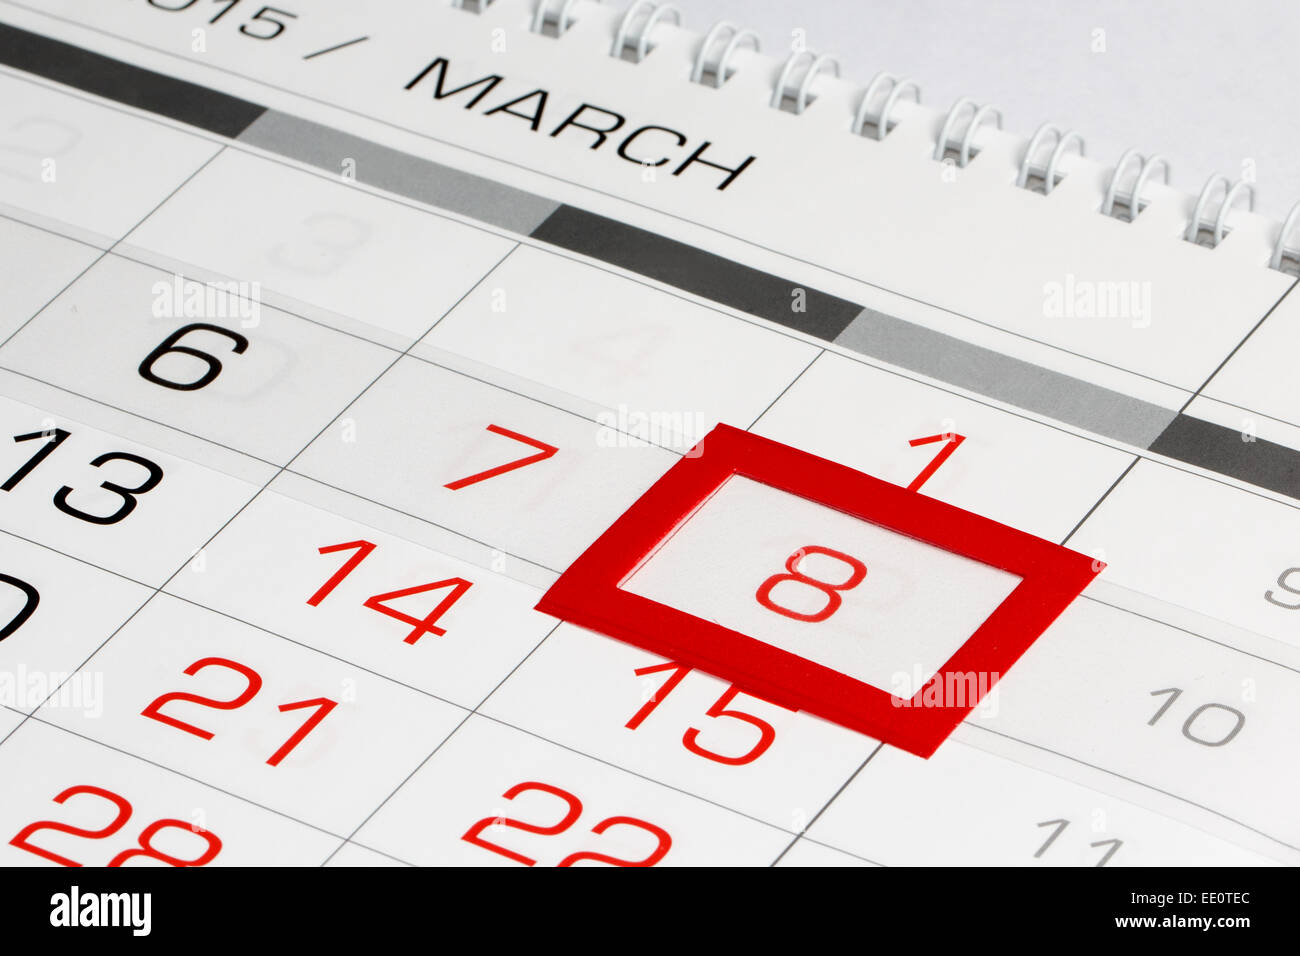 March 8 Stock Photos & March 8 Stock Images - Alamy